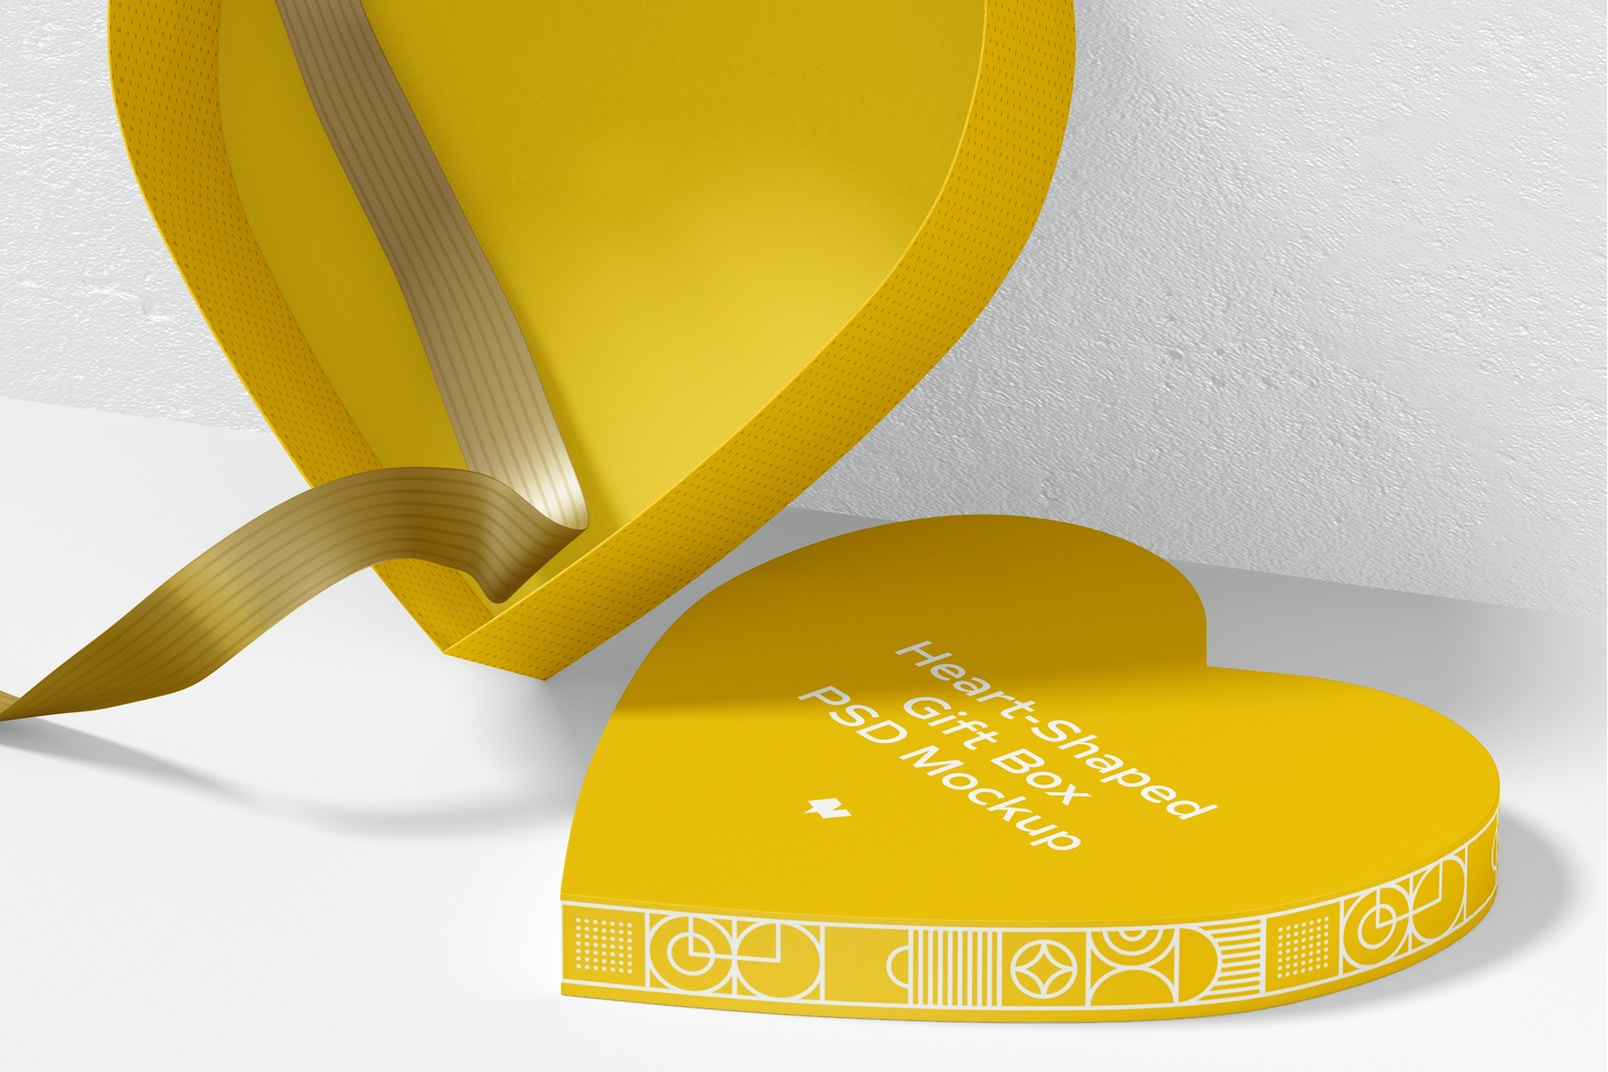 Heart-Shaped Gift Box With Paper Ribbon Mockup, Opened